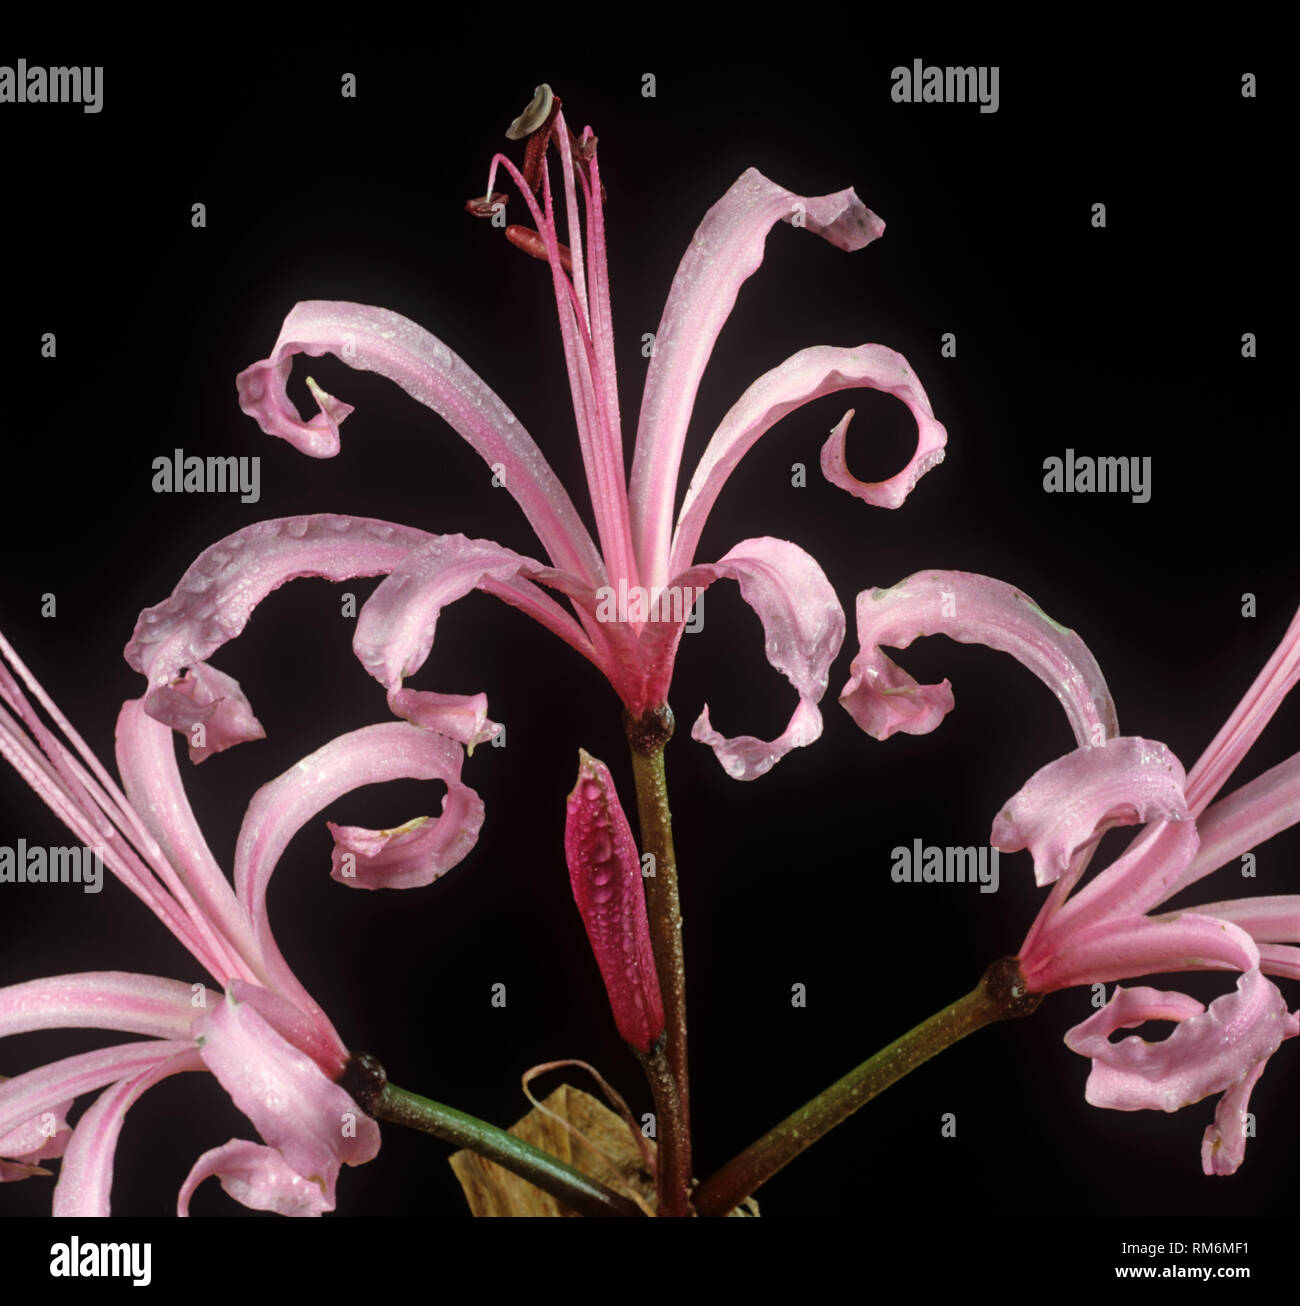 Pink Guernsey lily, Cornish, lily, Cape flower or bowden lily, Nerine bowdenii, pink flowers of ornamenal bulbous herbaceous plant Stock Photo